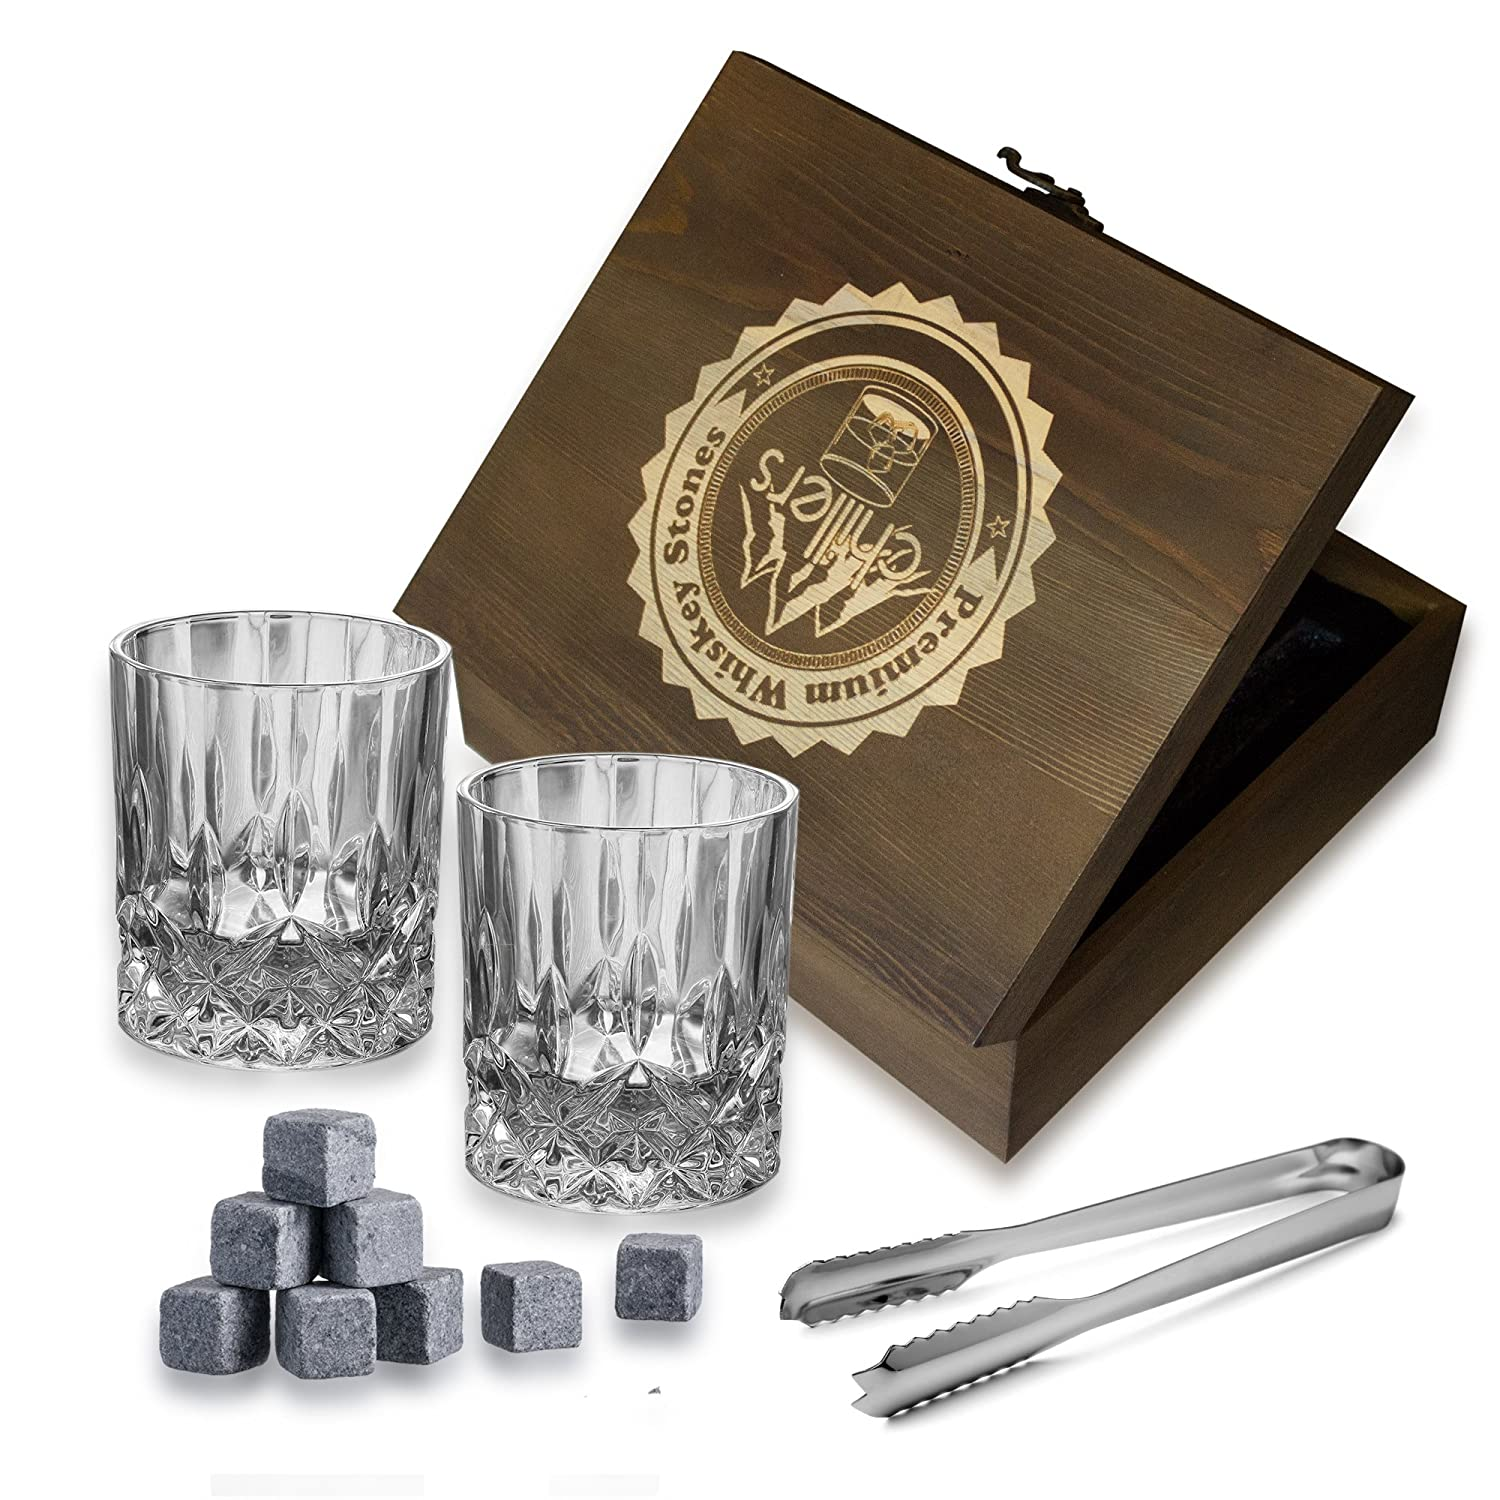 Whiskey Stones Gift Set - 8 Whiskey Stones (Reusable Ice Cubes or Chilling Rocks or Chilling Stones or On The Rocks Stones), 2-Crystal Whiskey Glasses, Tongs, Velvet Pouch in Elegant Wooden Gift Box